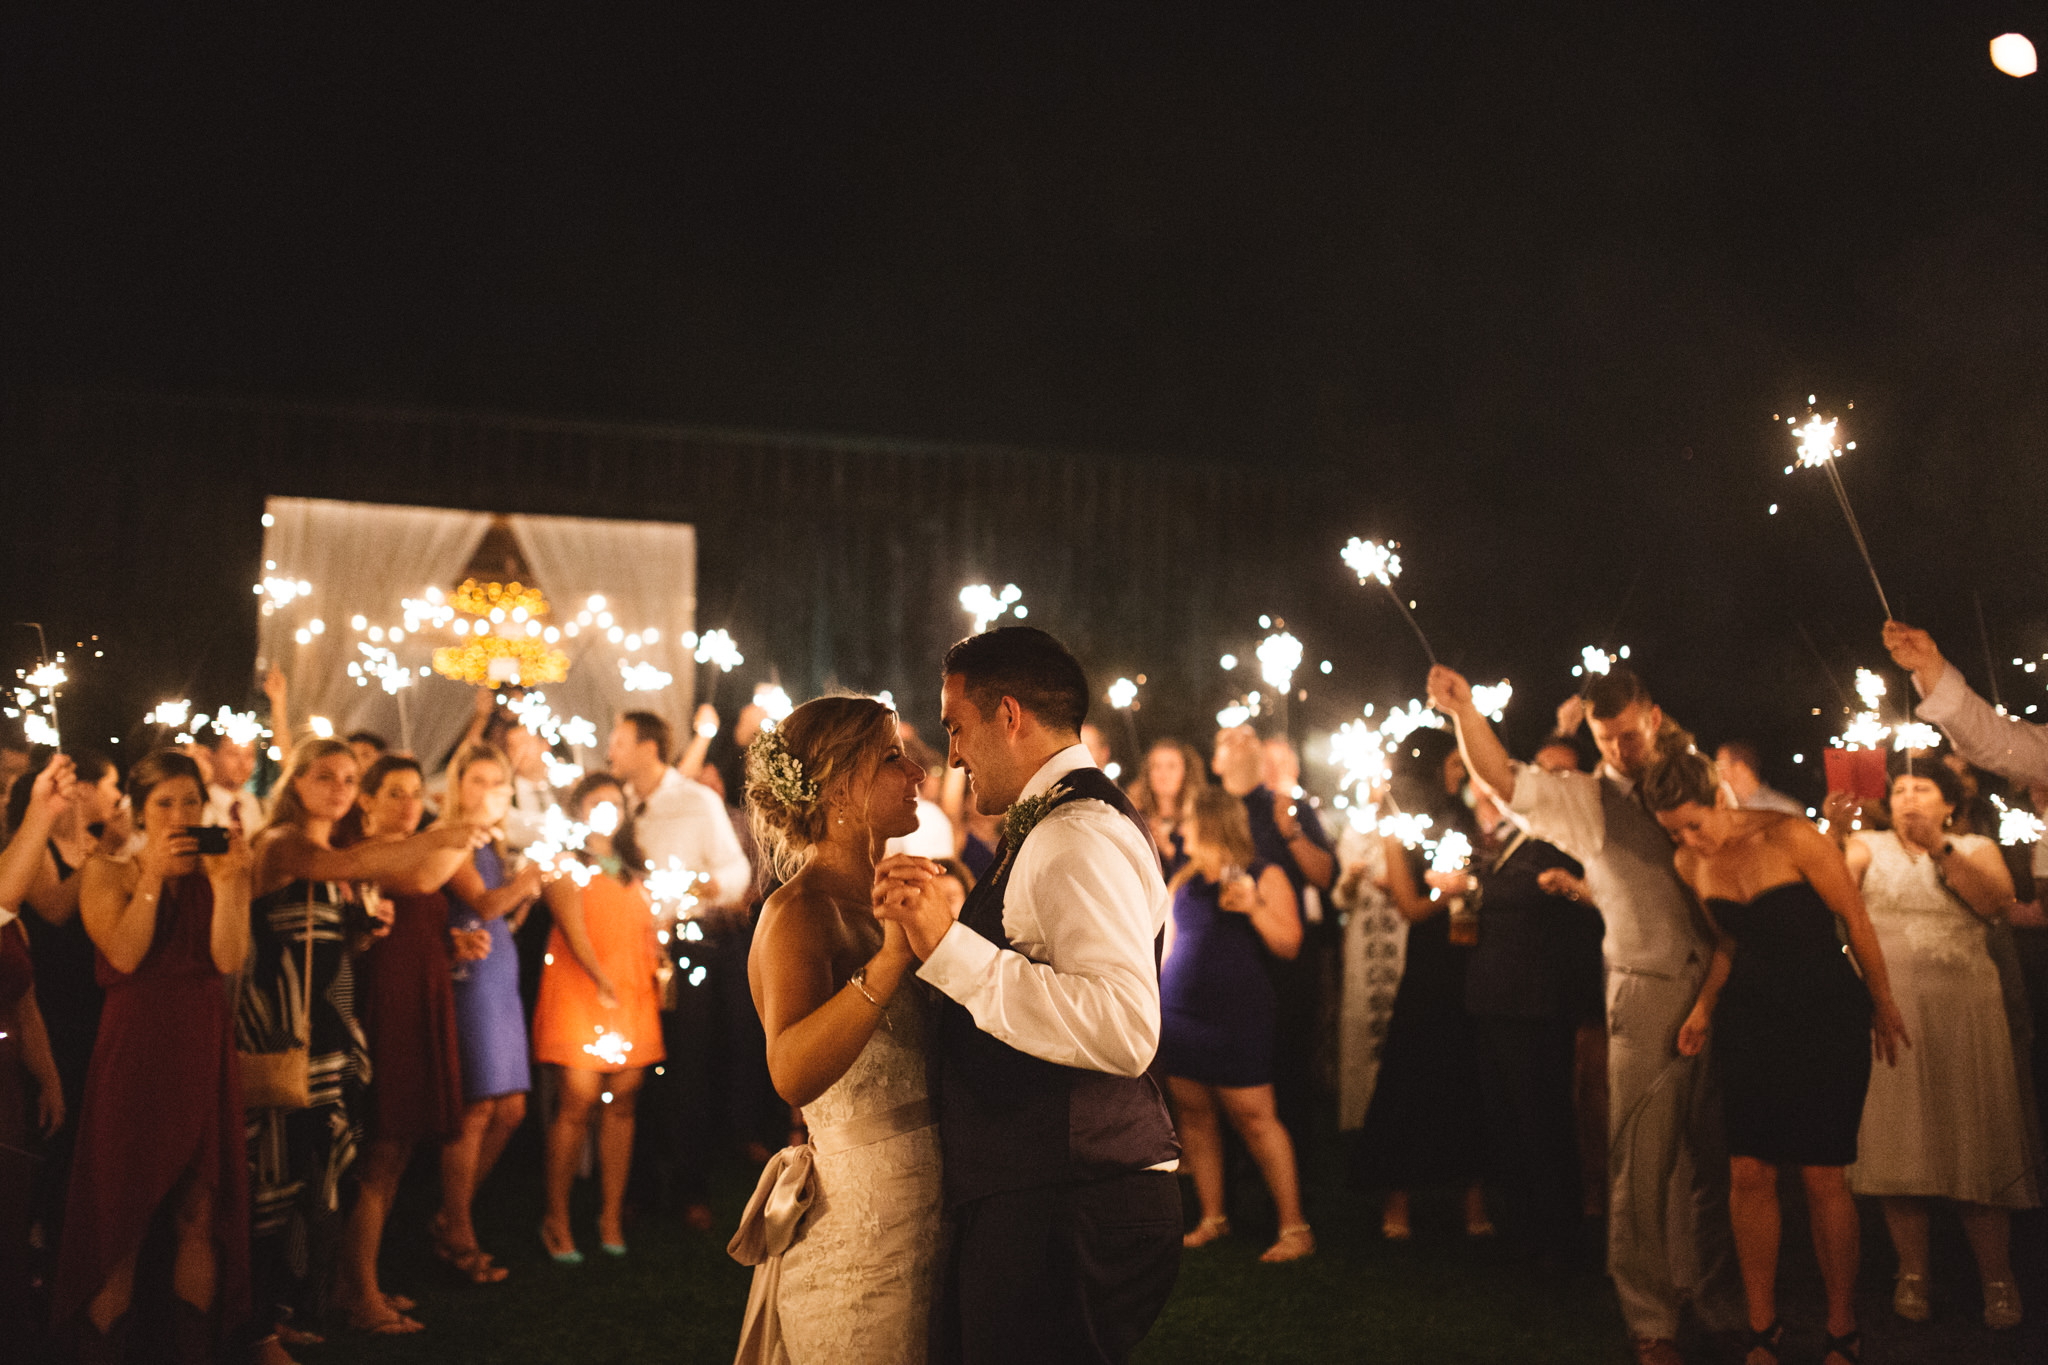 bride and groom dancing under sparklers in a field